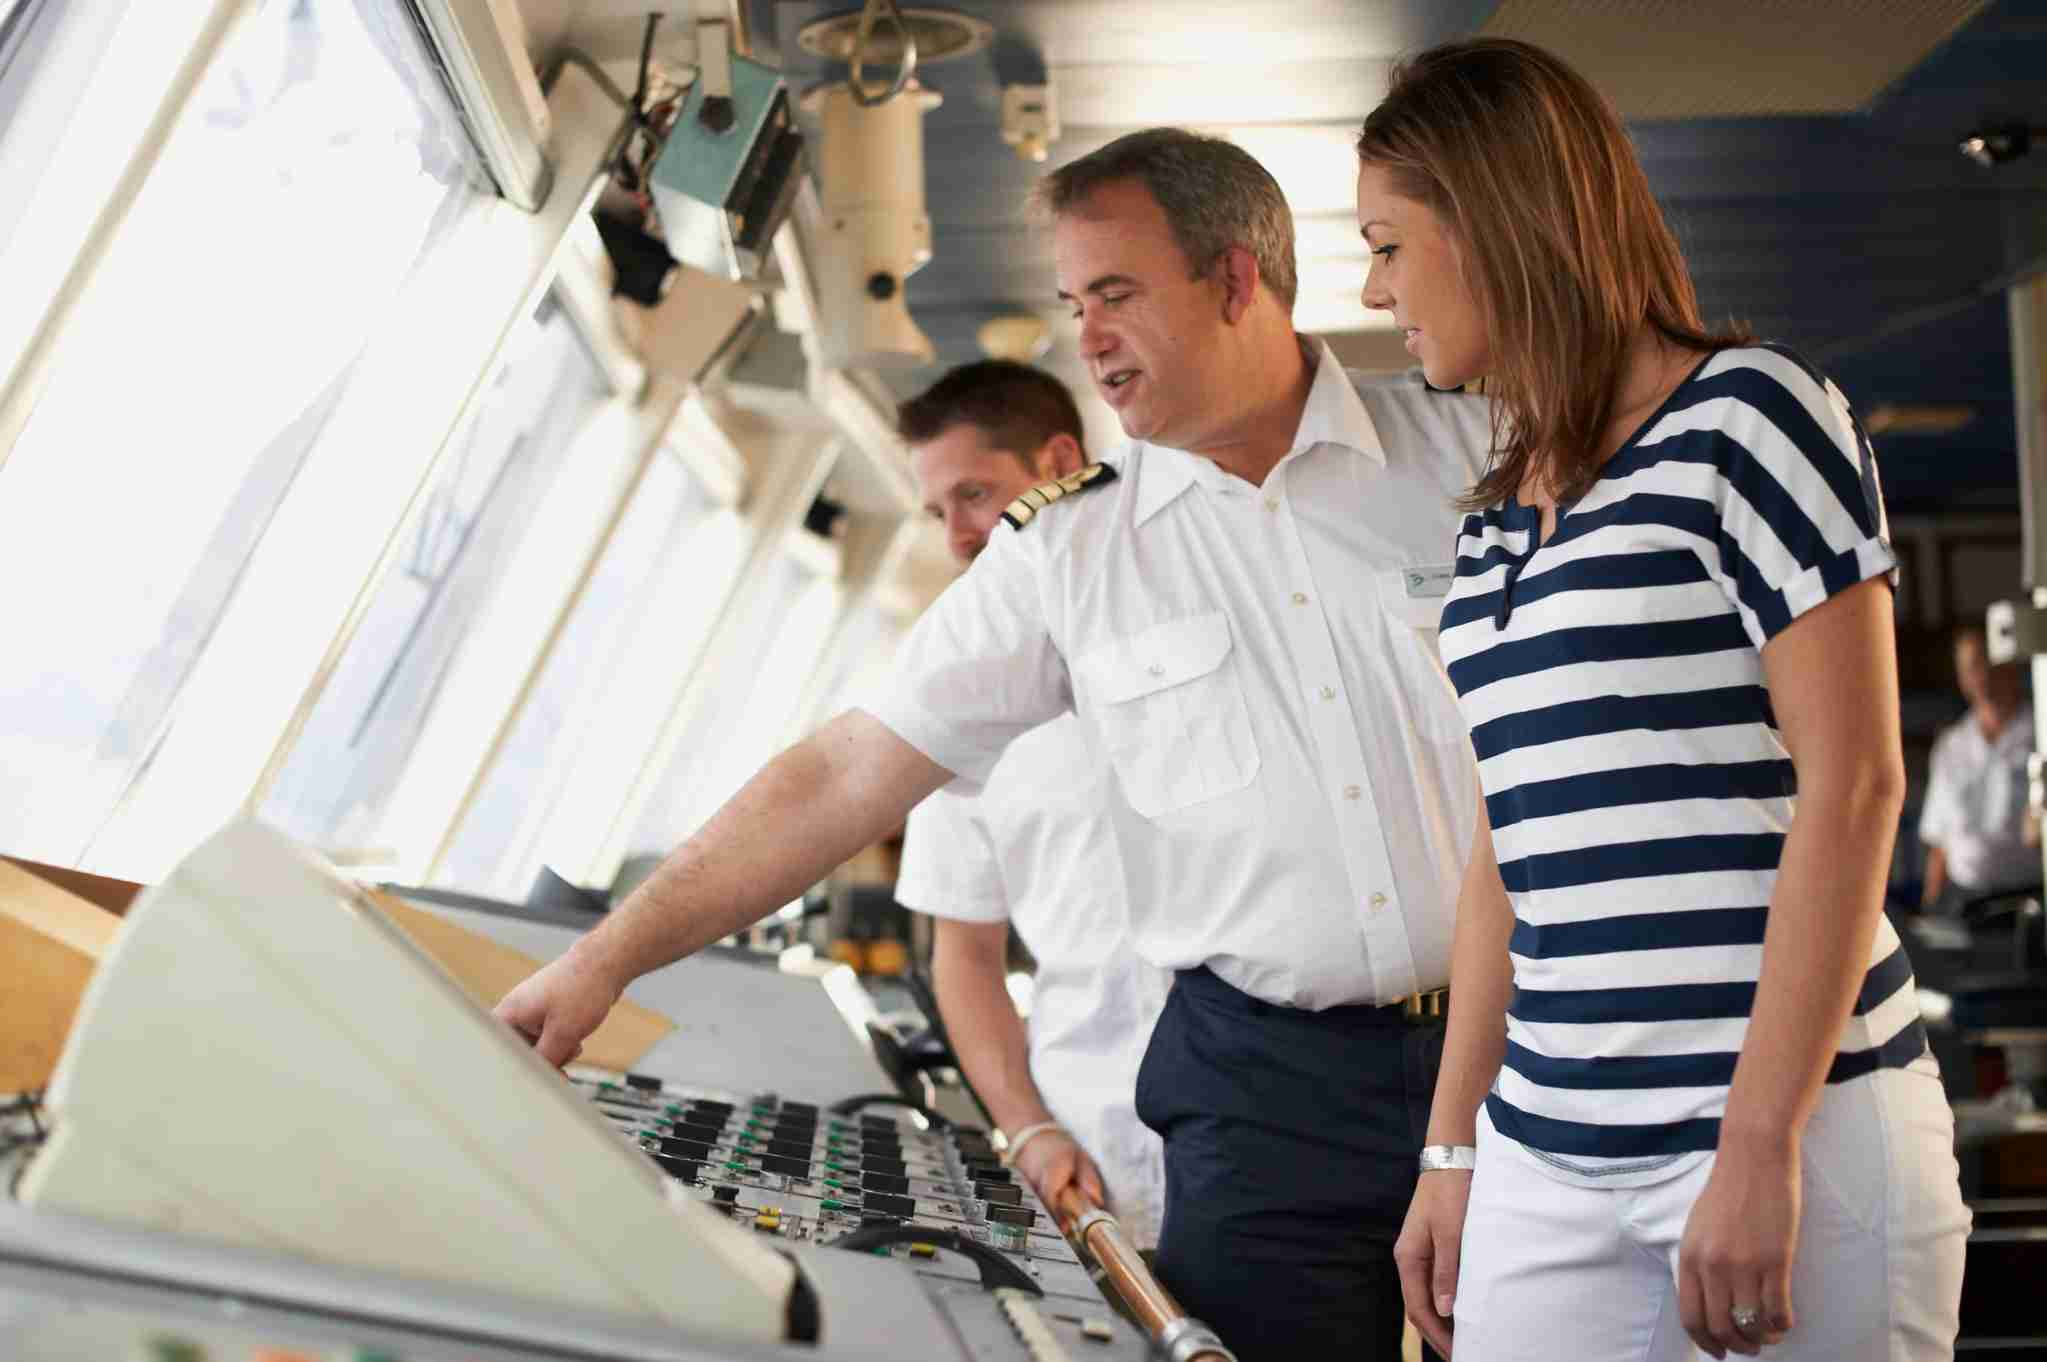 """Windstar Cruises ships have an """"open bridge"""" policy that allows for passenger visits. Photo courtesy of Windstar Cruises."""